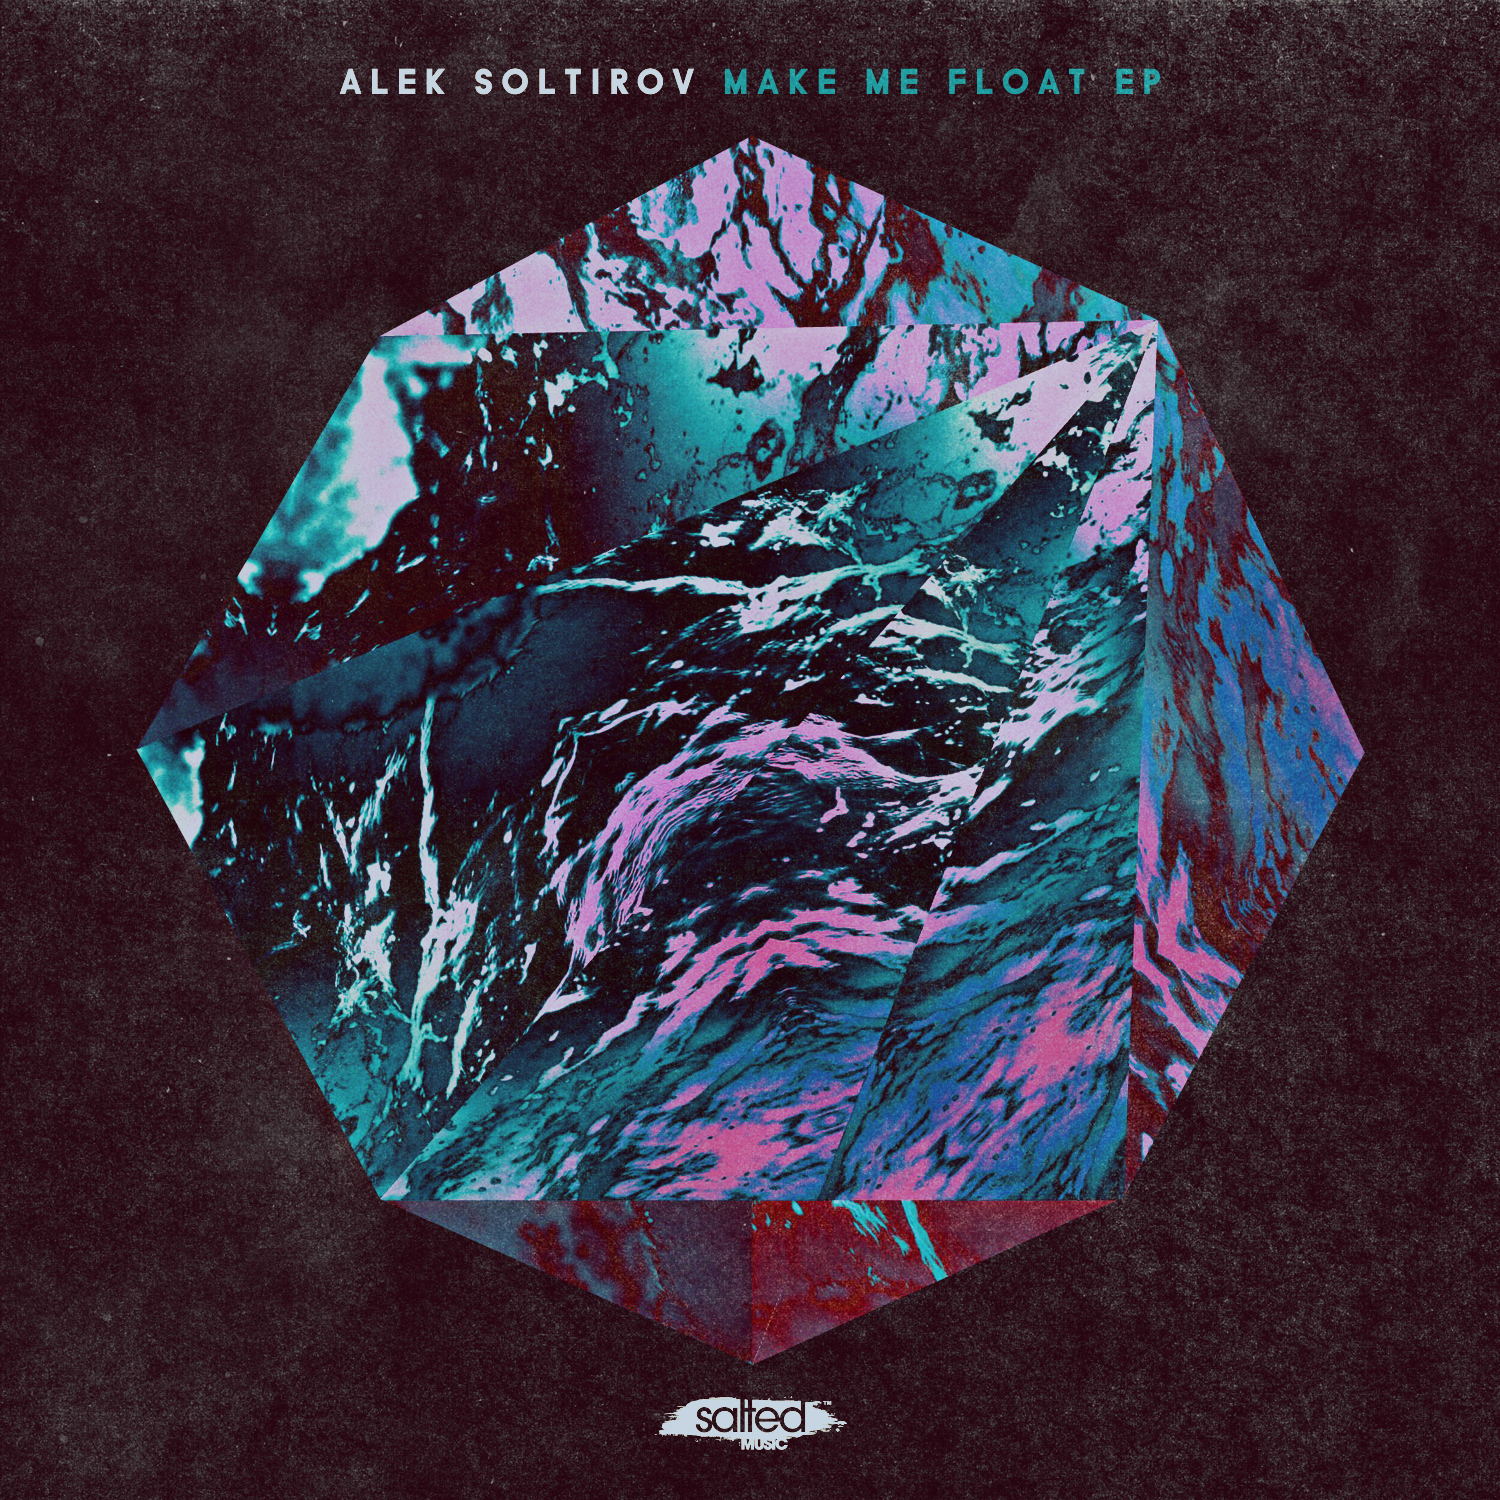 SLT109: Make Me Float EP - Alek Solitov (Salted Music)